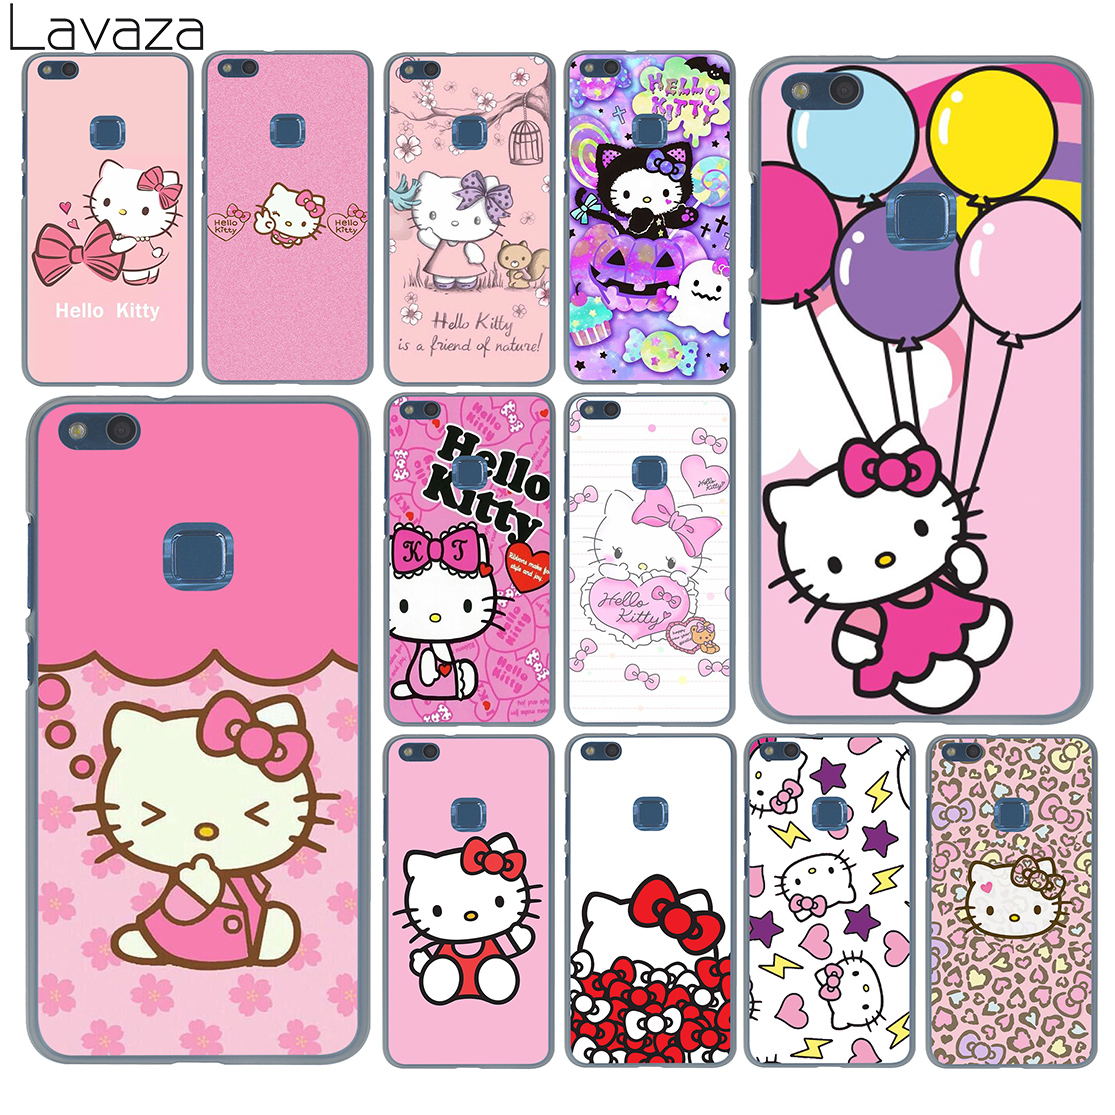 876f67a00c2 Lavaza lovely cute Hello Kitty lovely pink Case for Huawei P20 P9 P10 Plus  P8 Mate 20 Pro 10 Lite Mini 2016 2017 P smart 2019